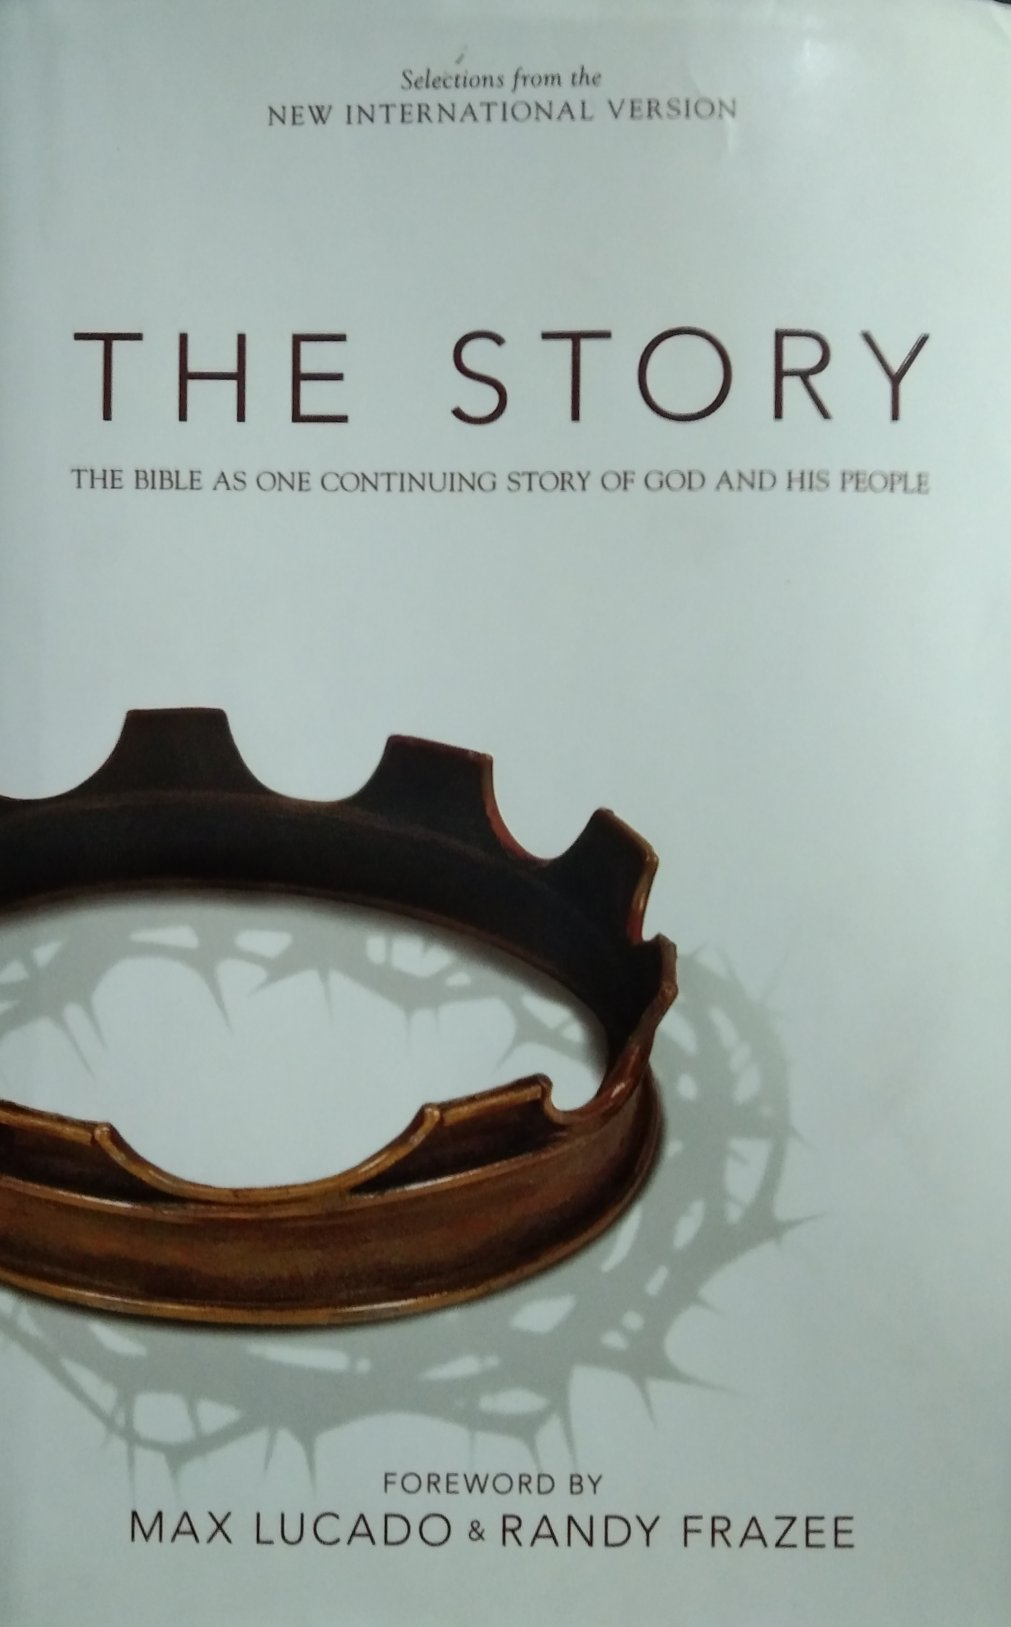 The story by max lucado